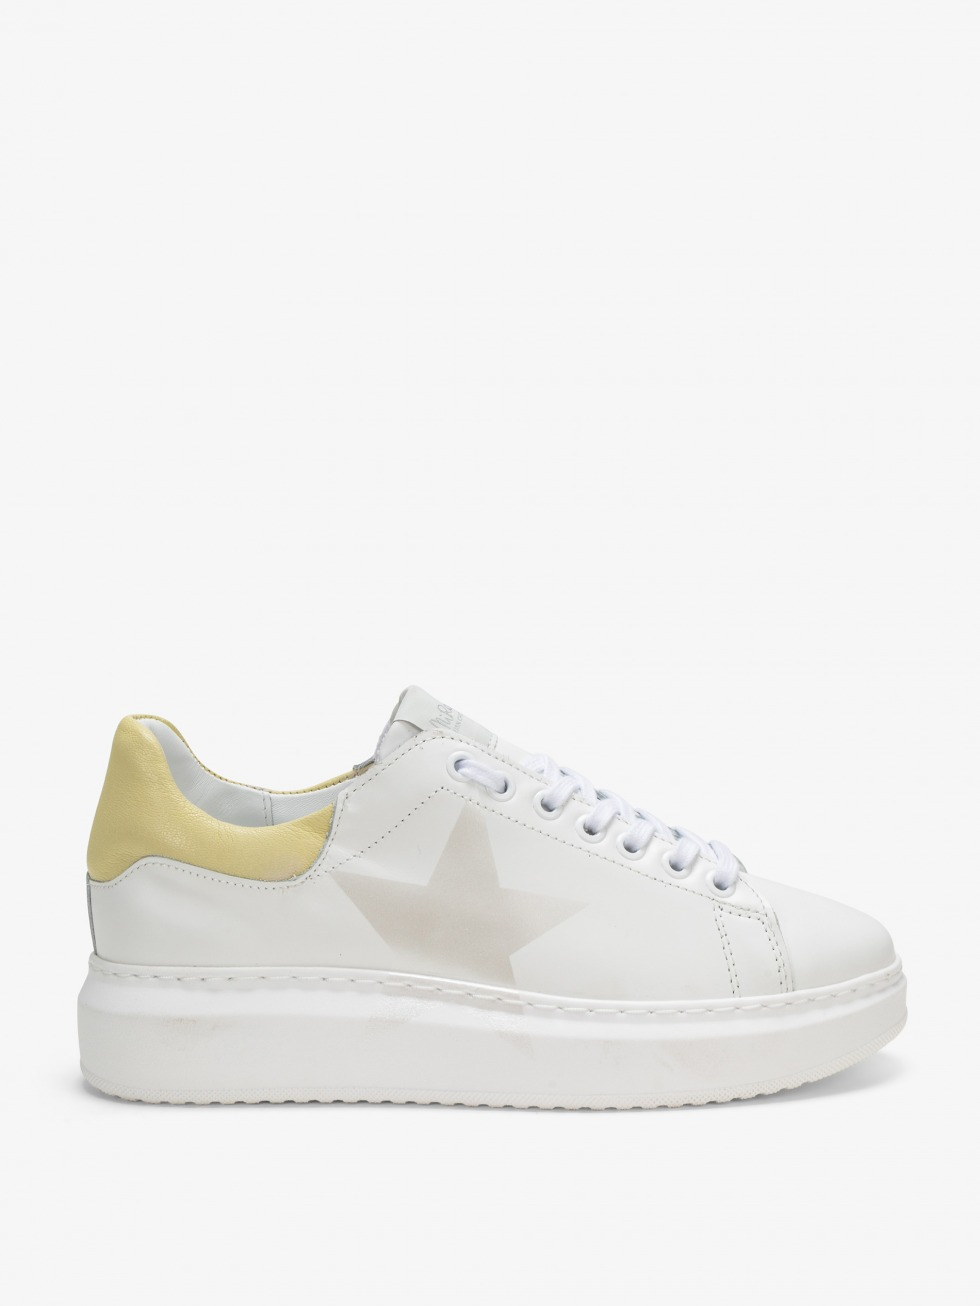 sneakers-con-plateau-bianche-angel-seventies-yellow-madreperla-stella